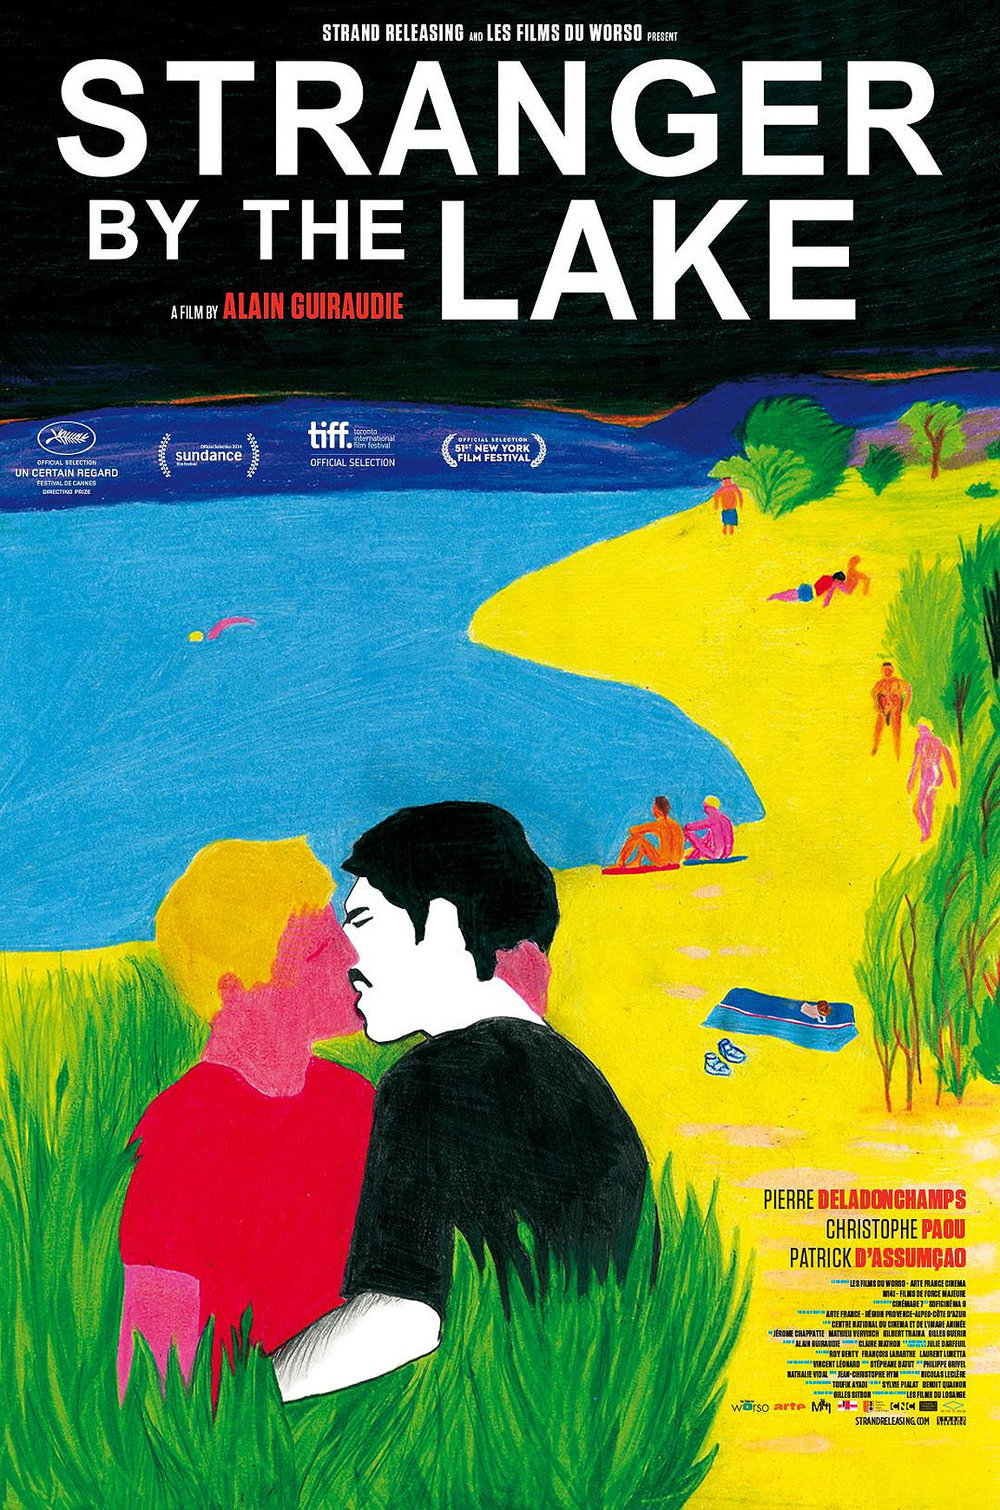 Stranger-By-The-Lake-movie-poster.jpg